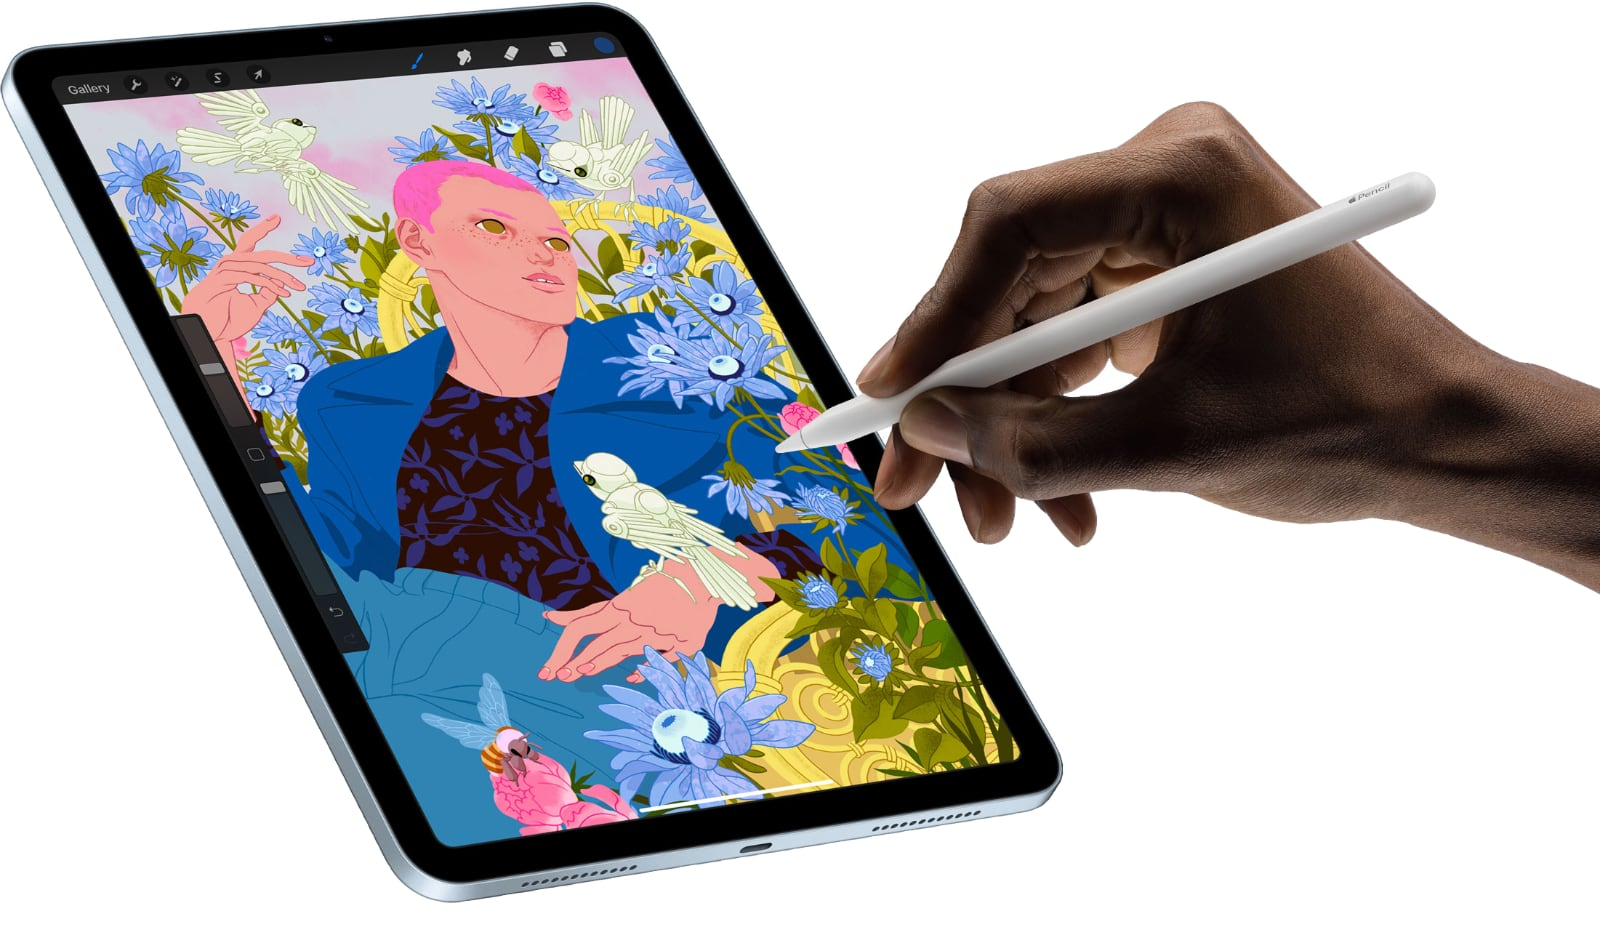 Deals: Apple Pencil 2 Available for $103.99 on Verizon ($25 Off)